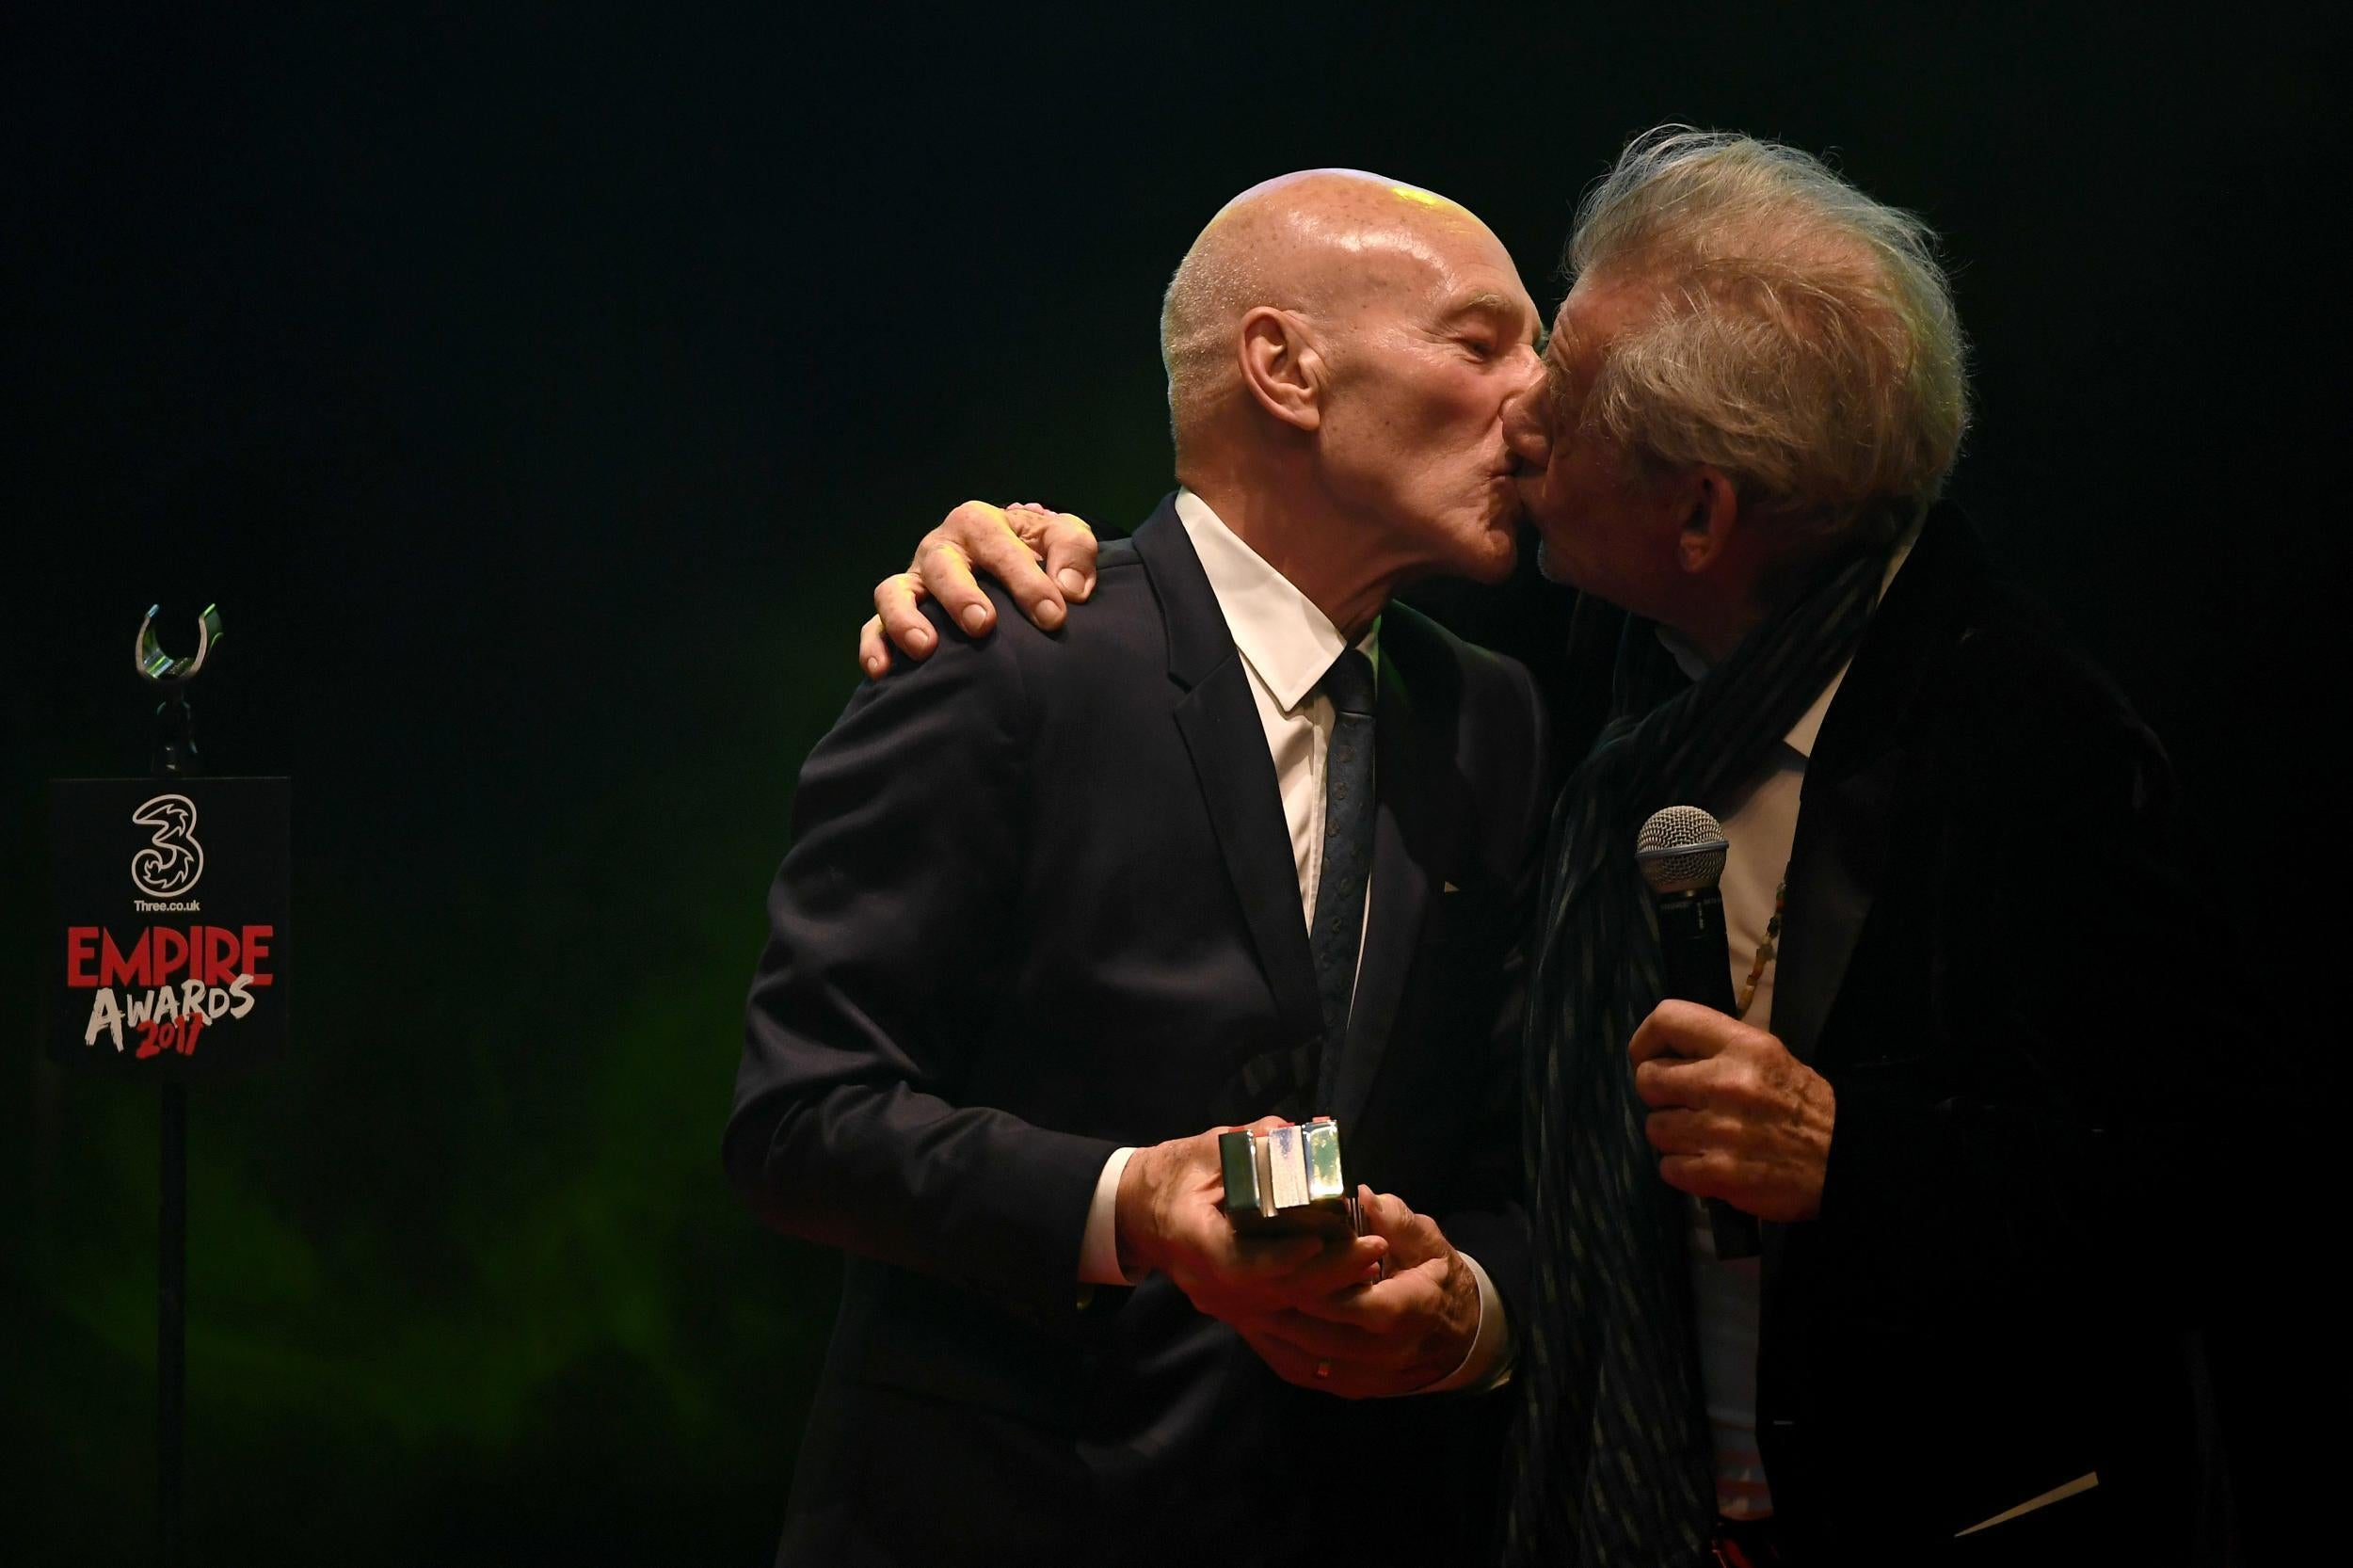 Sir Ian McKellen and Patrick Stewart kiss at Mr. Holmes ... |Ian Mckellen Patrick Stewart Kiss